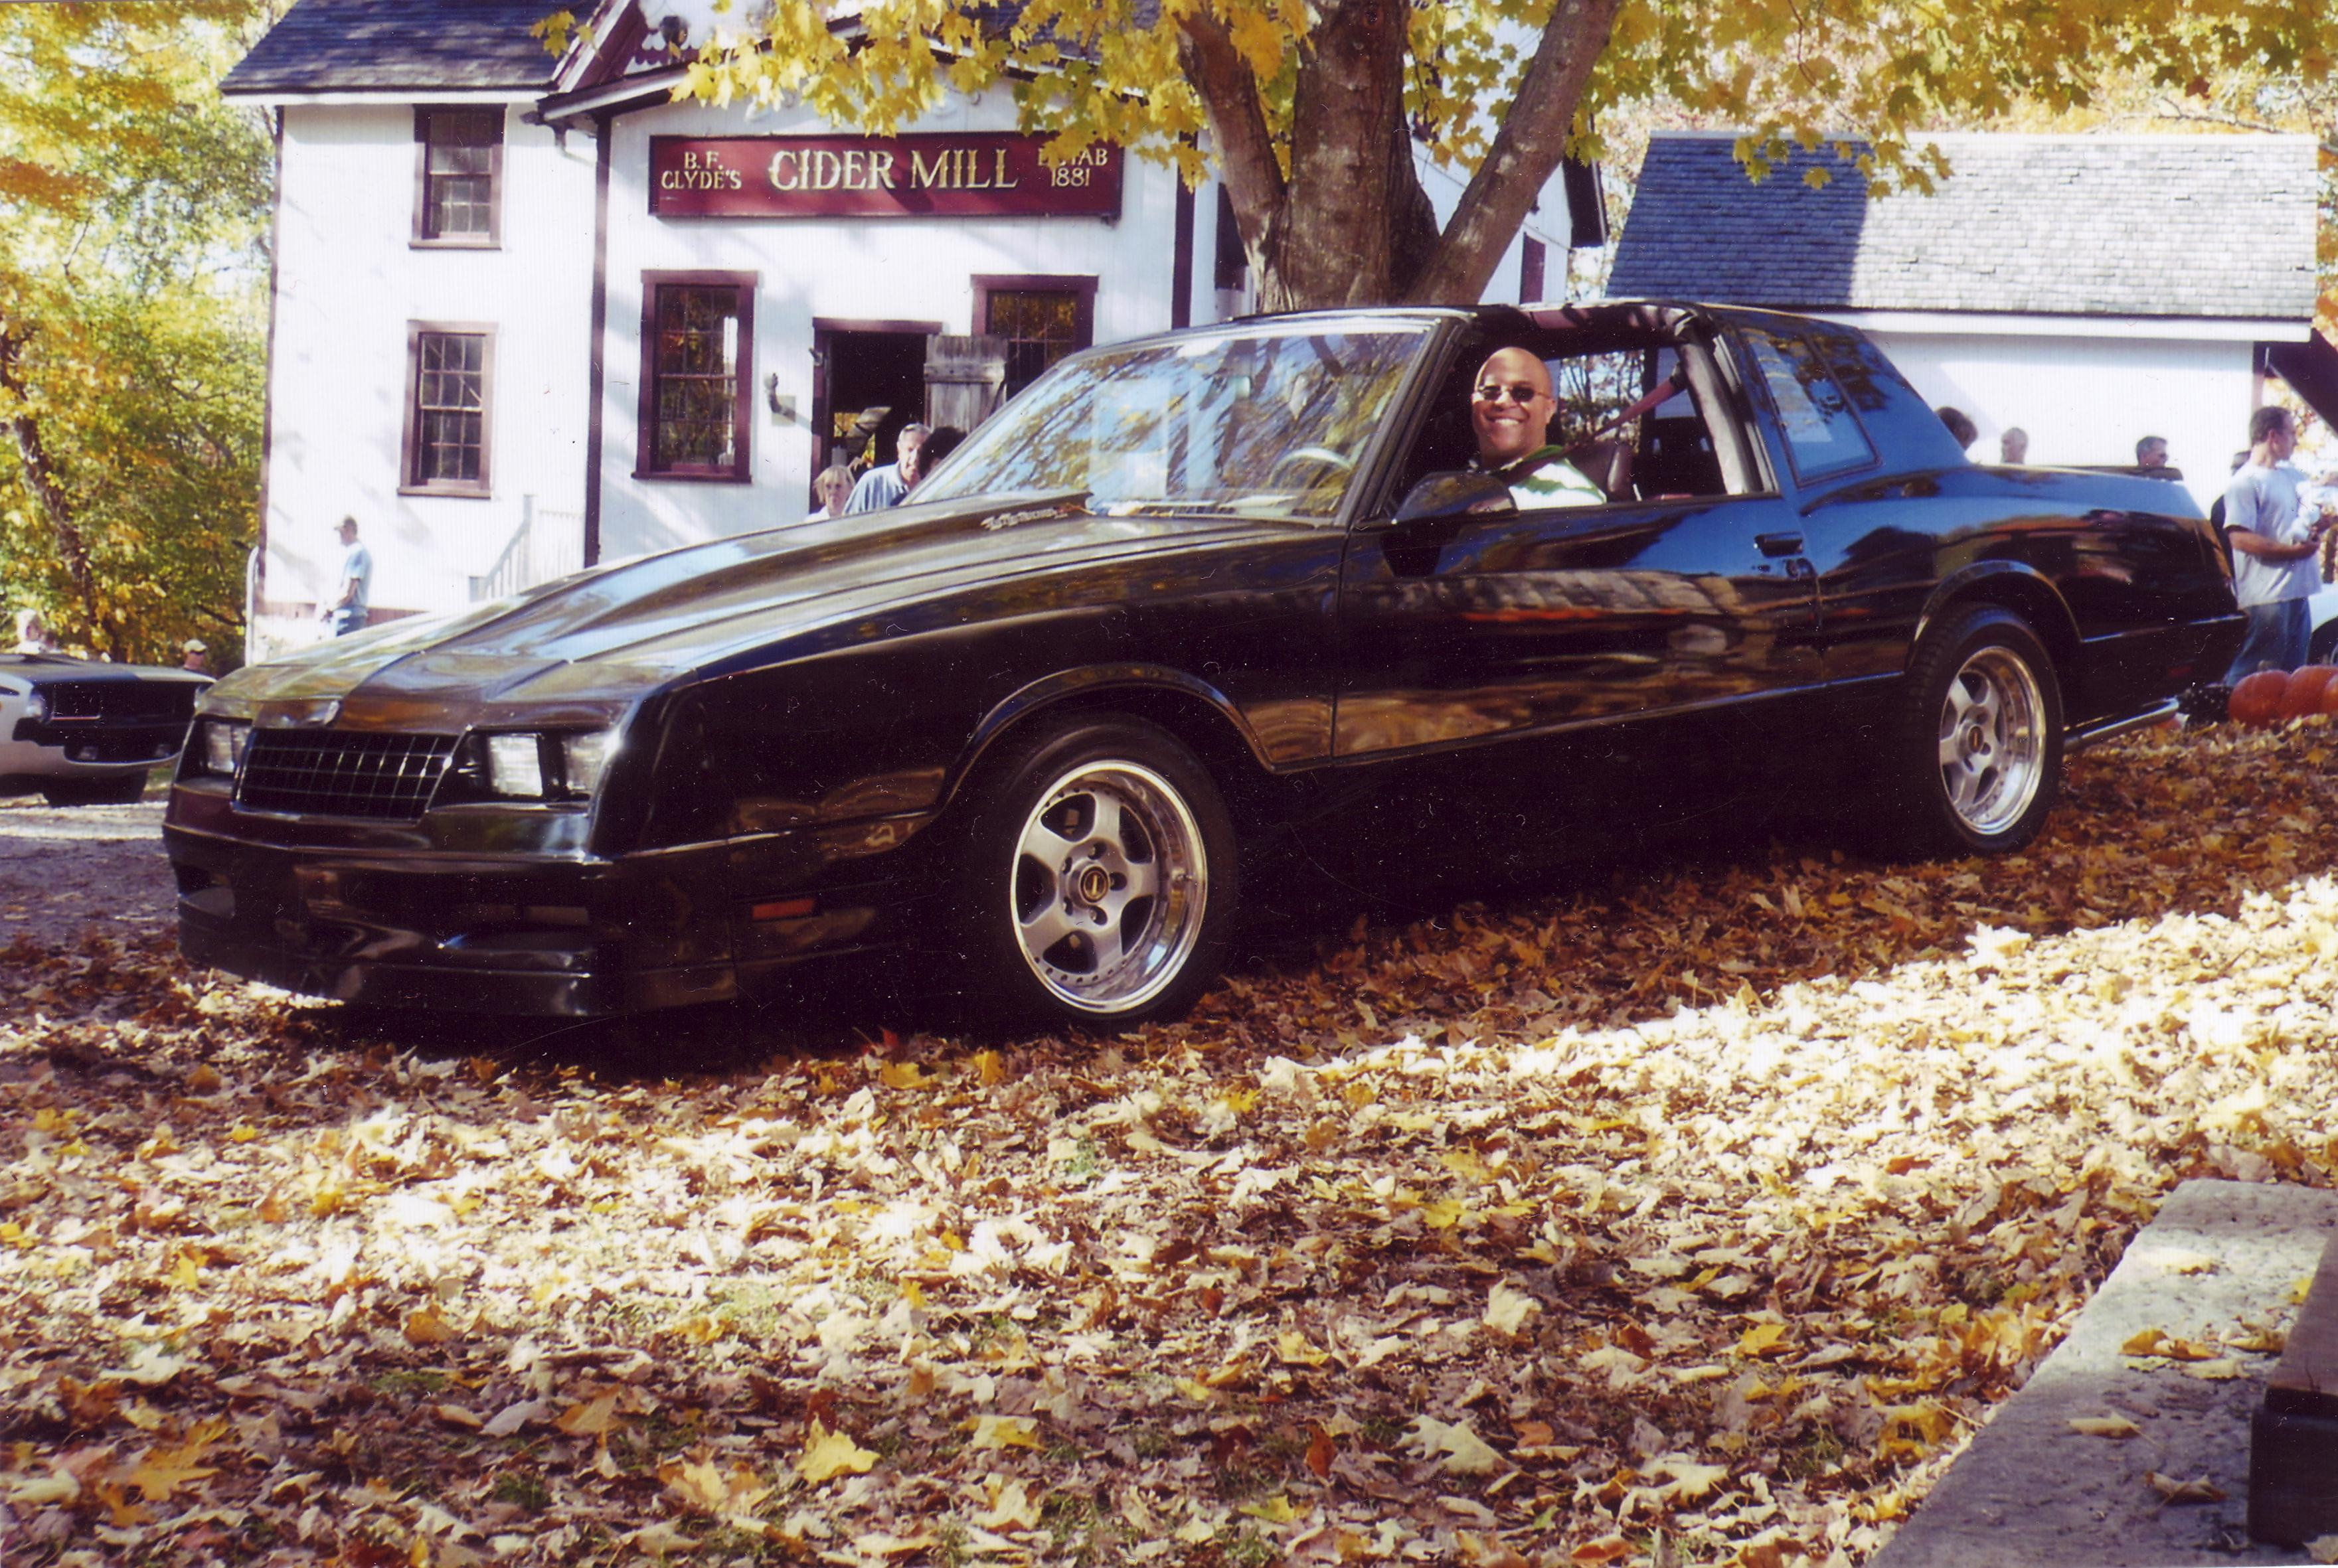 Shawn's 86 Monte Carlo SS